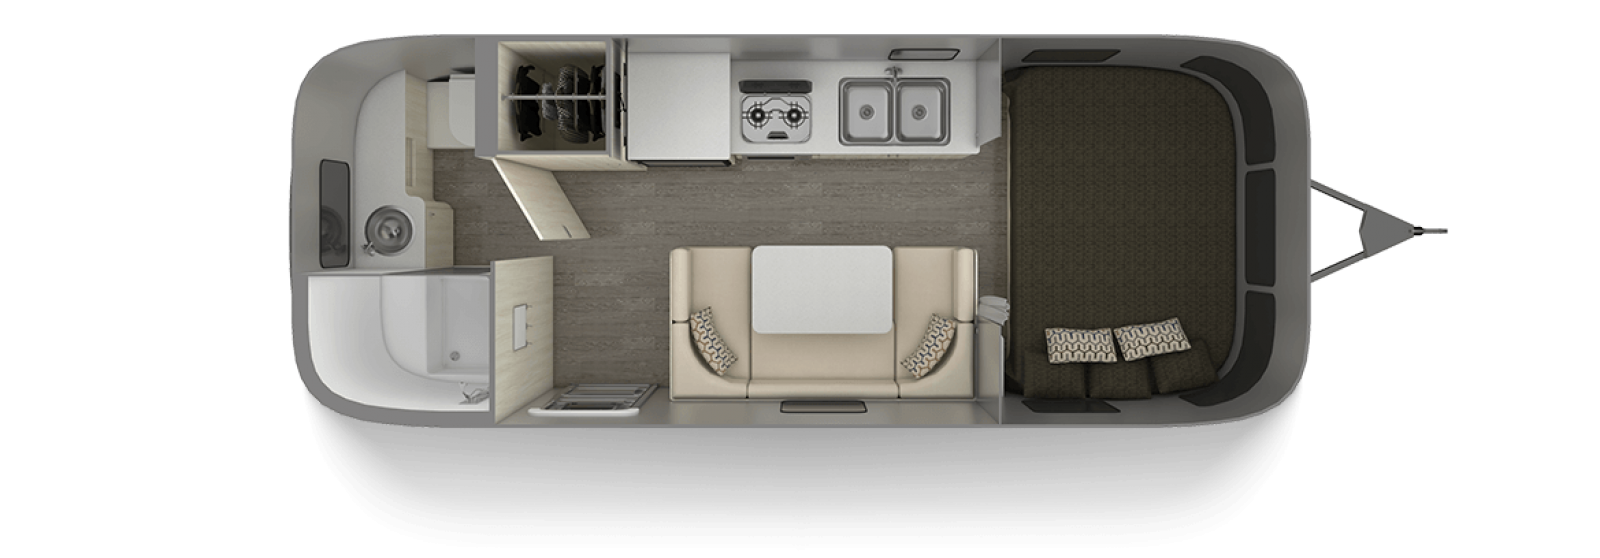 Airstream Sport 22FB Floor Plan